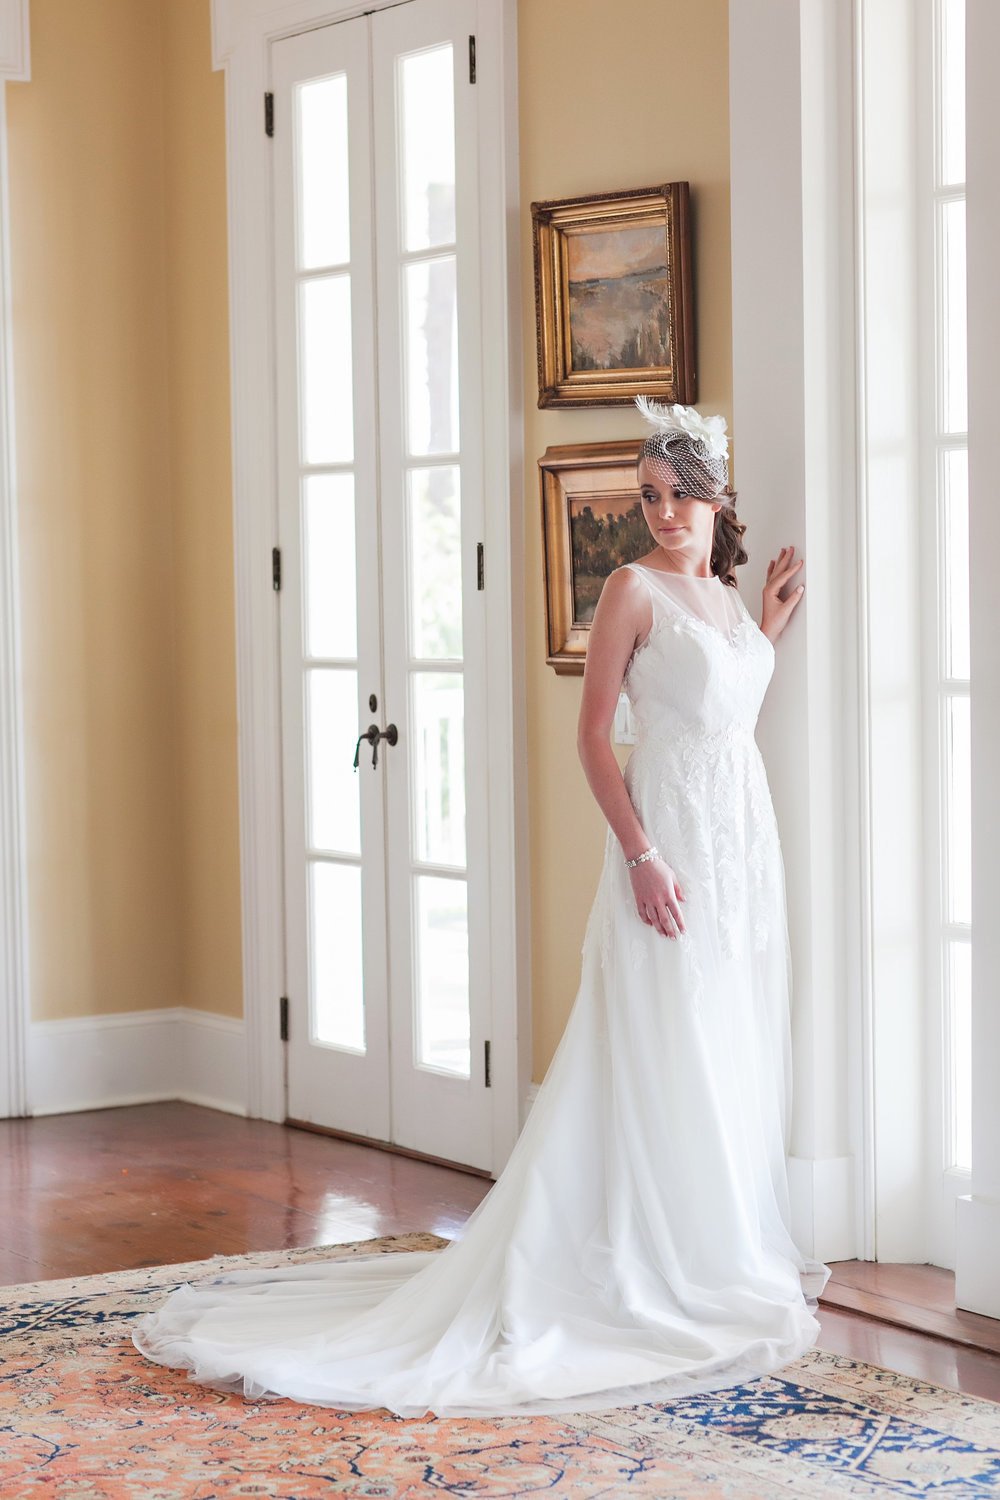 heather-kline-photography-oldfield-river-club-wedding-savannah-wedding-photographer-ti-adora-ivory-and-beau-bridal-boutique-savannah-wedding-dresses-savannah-bridal-boutique-savannah-bridal-gowns-bridal-accessories-savannah-wedding-planner-4.jpg